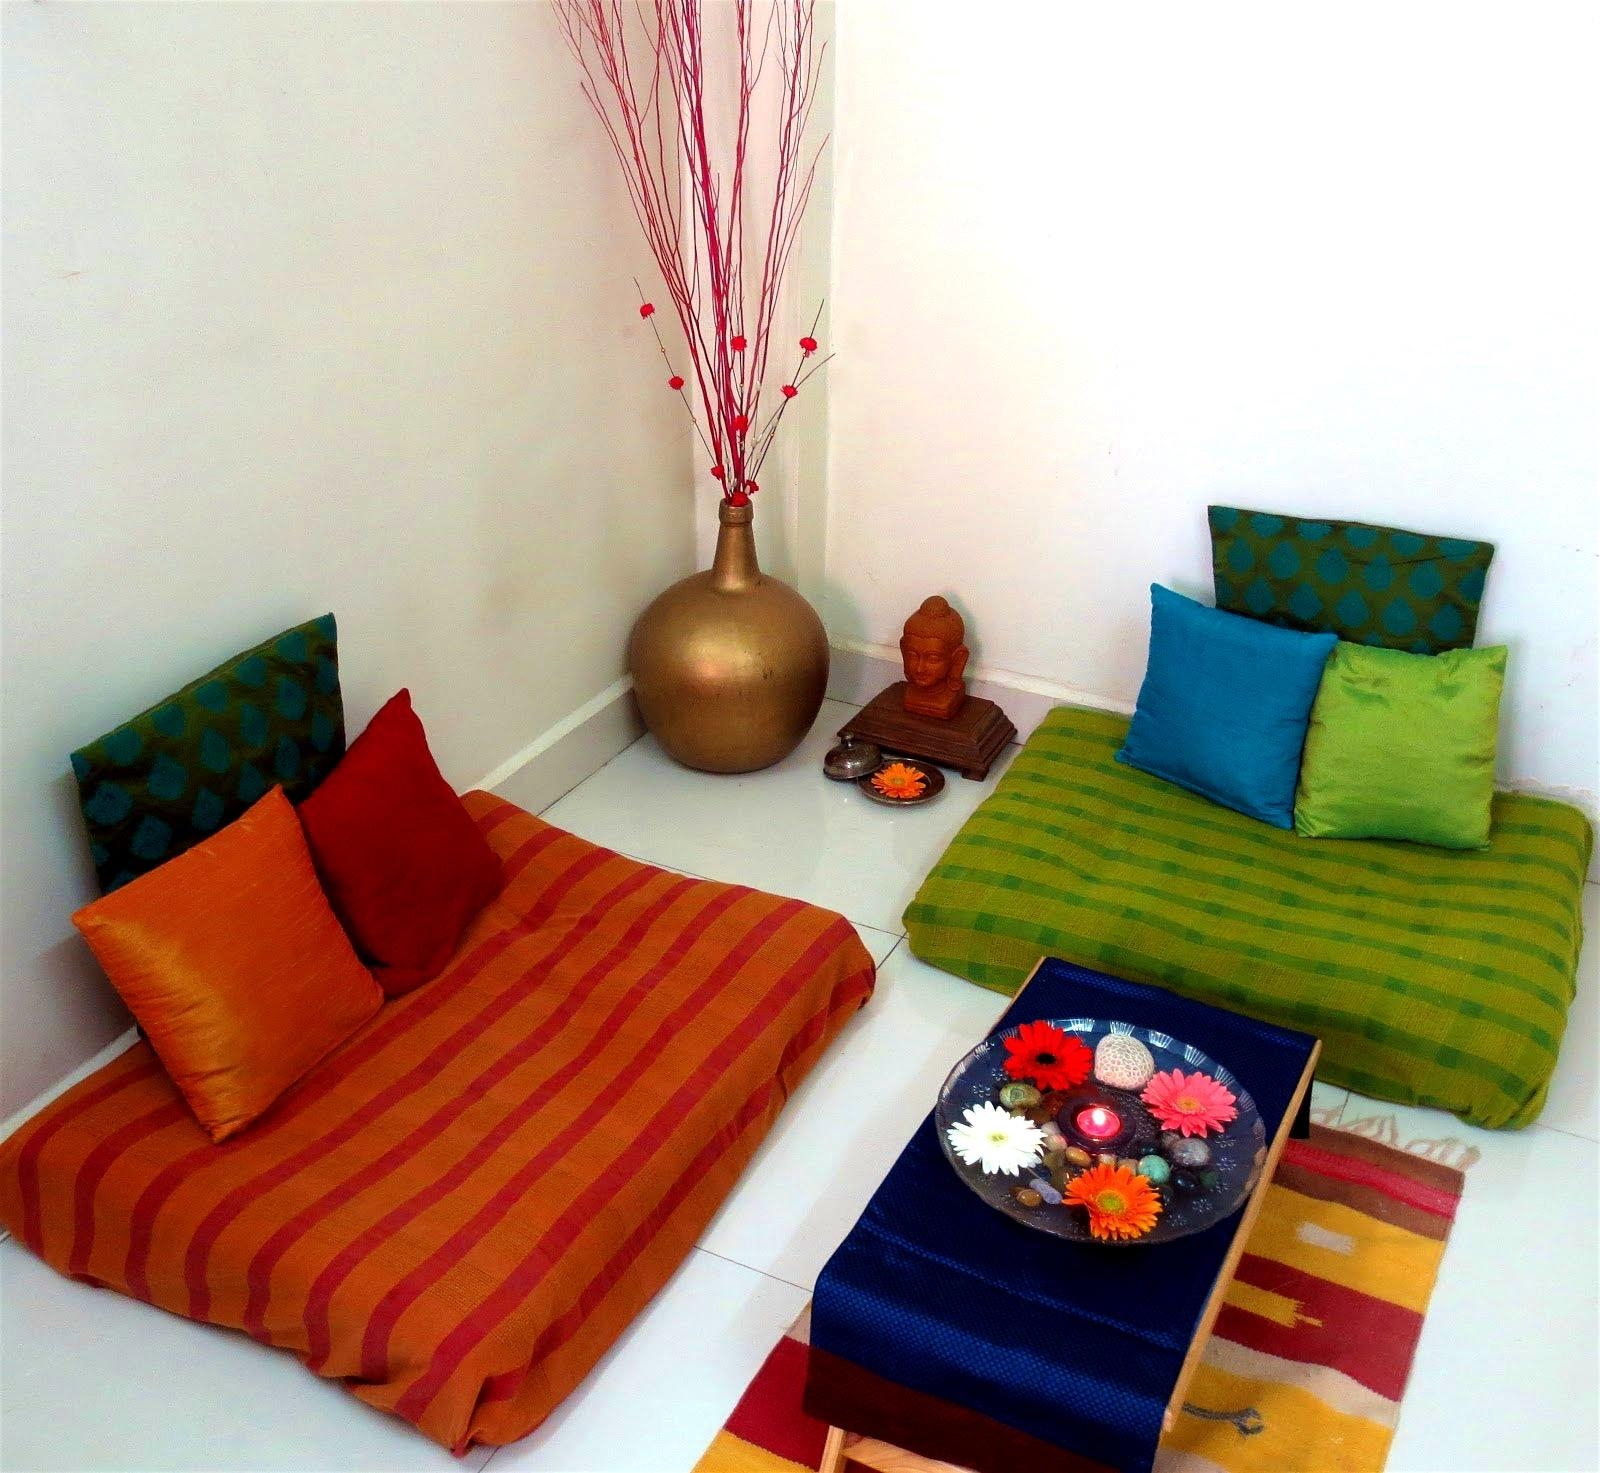 One Seat Cushion Sofas | Cushions Decoration In Floor Cushion Sofas (View 15 of 20)